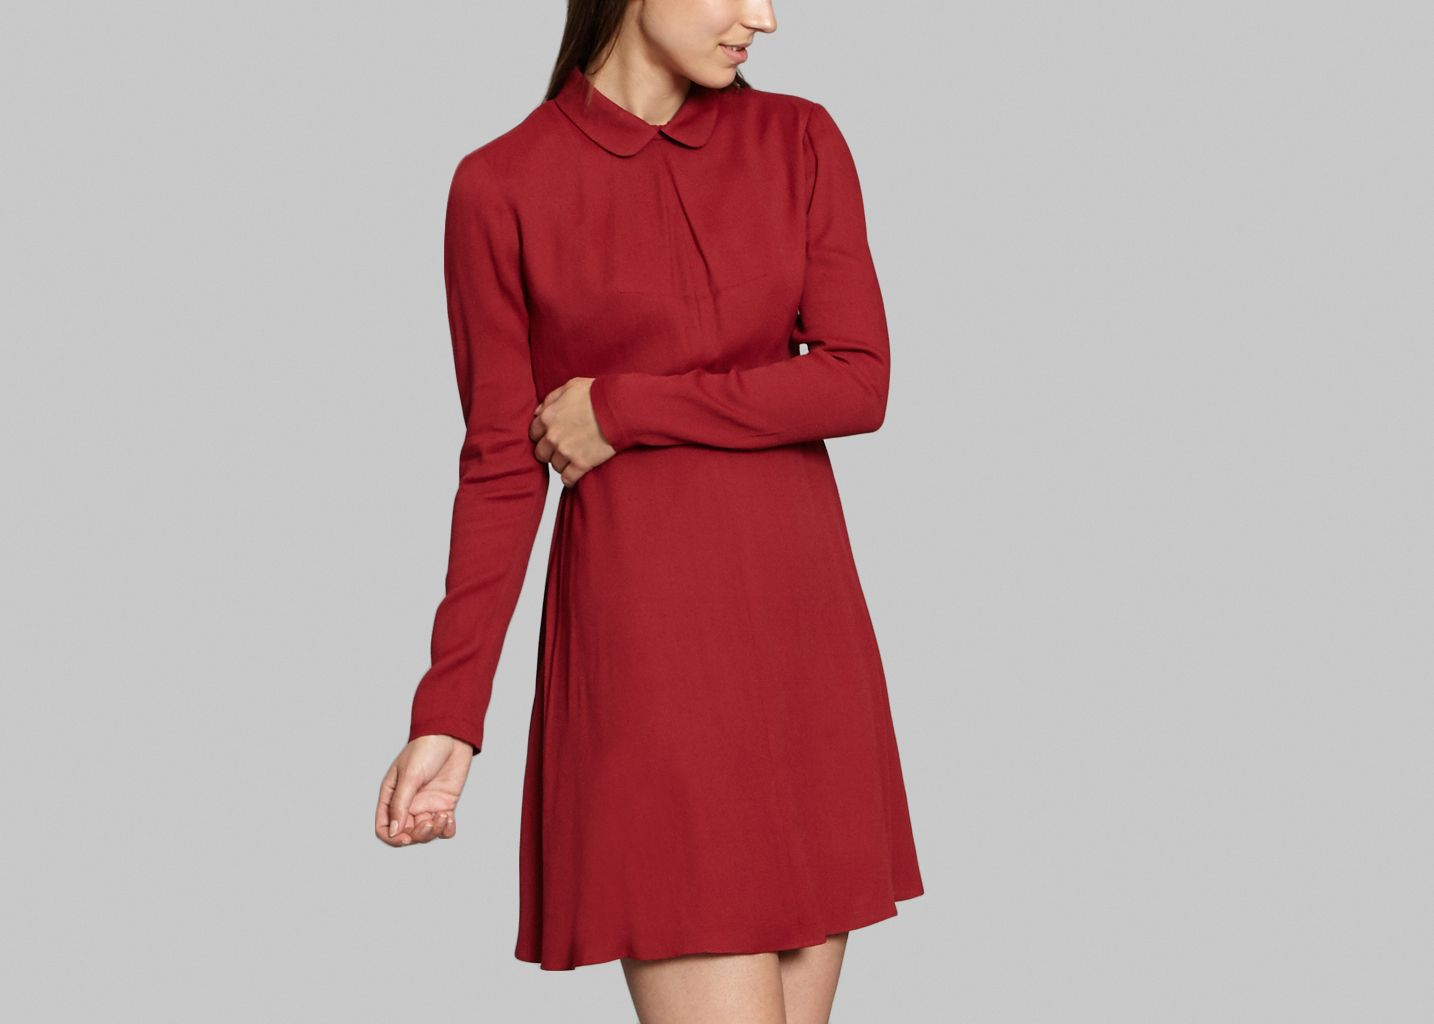 Peter Pan Collar Dress - Sonia By